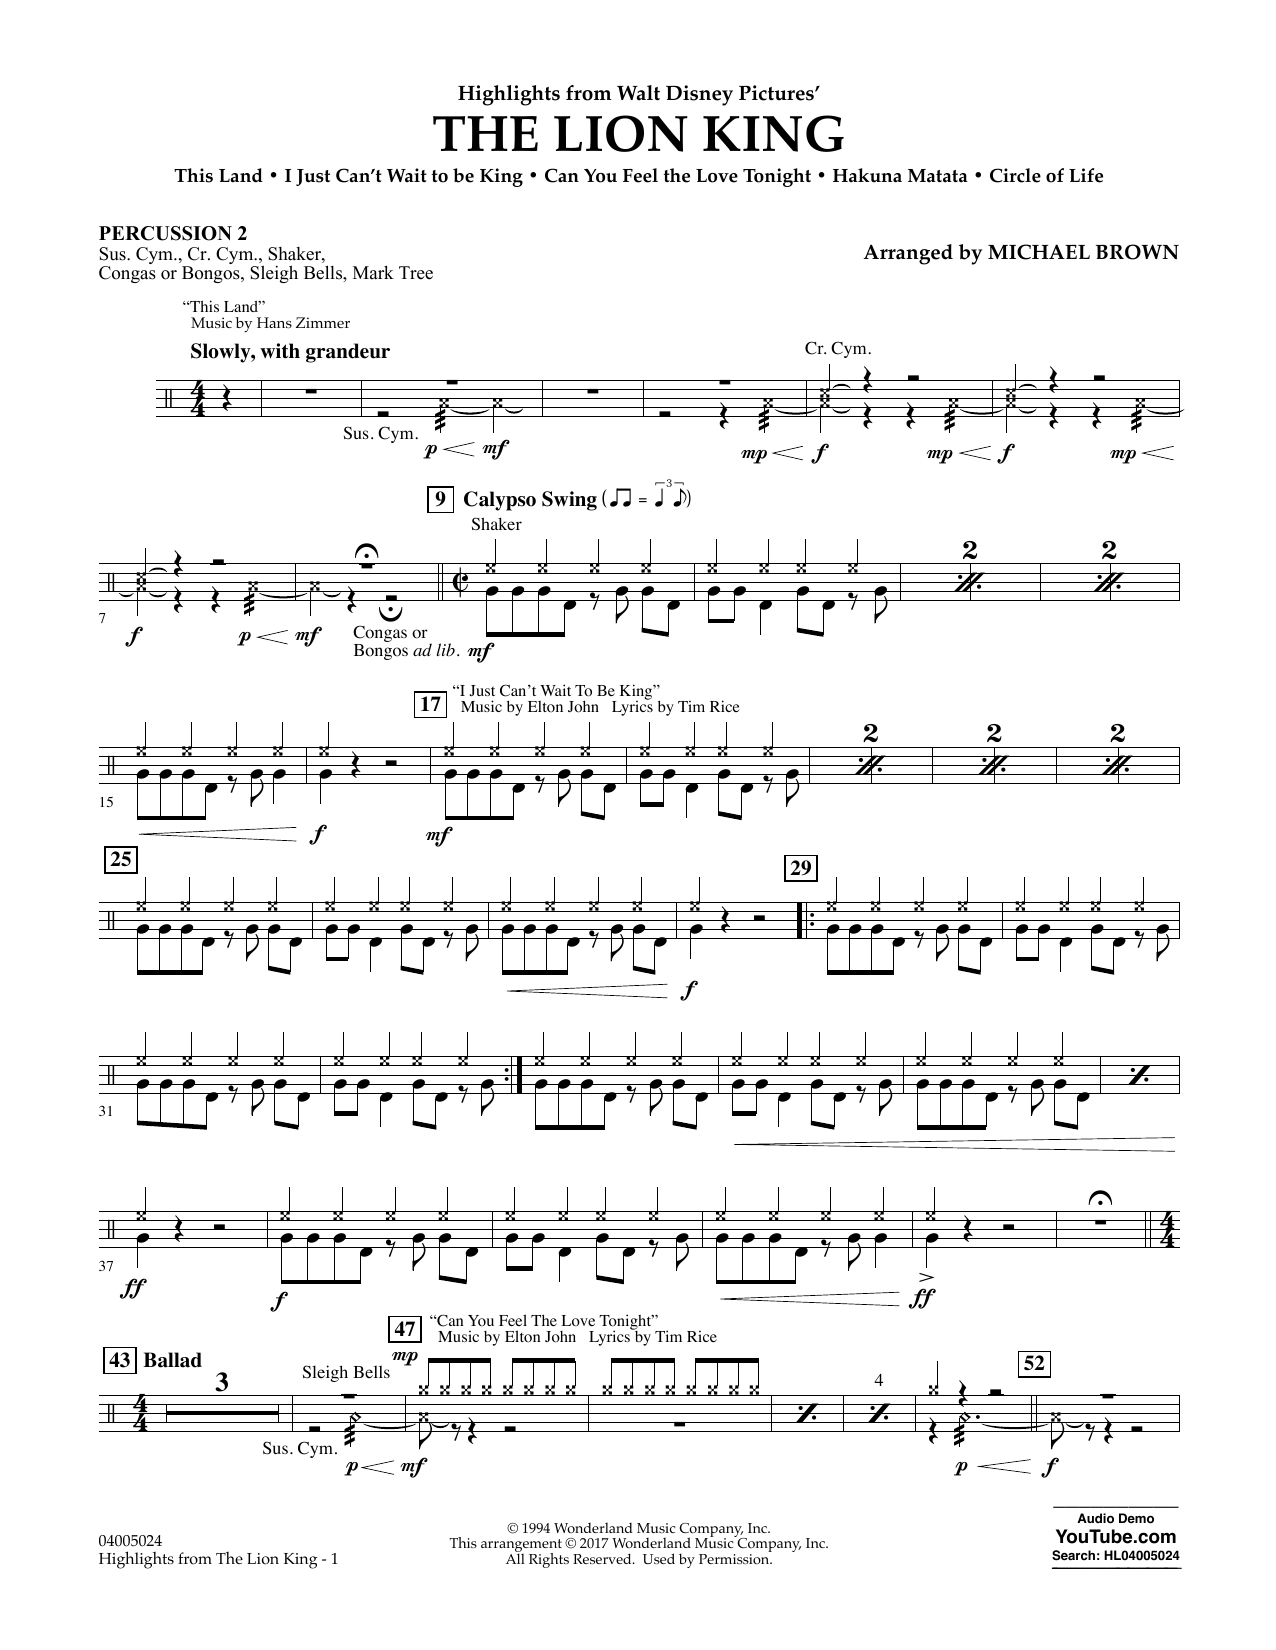 Highlights from The Lion King - Percussion 2 Sheet Music